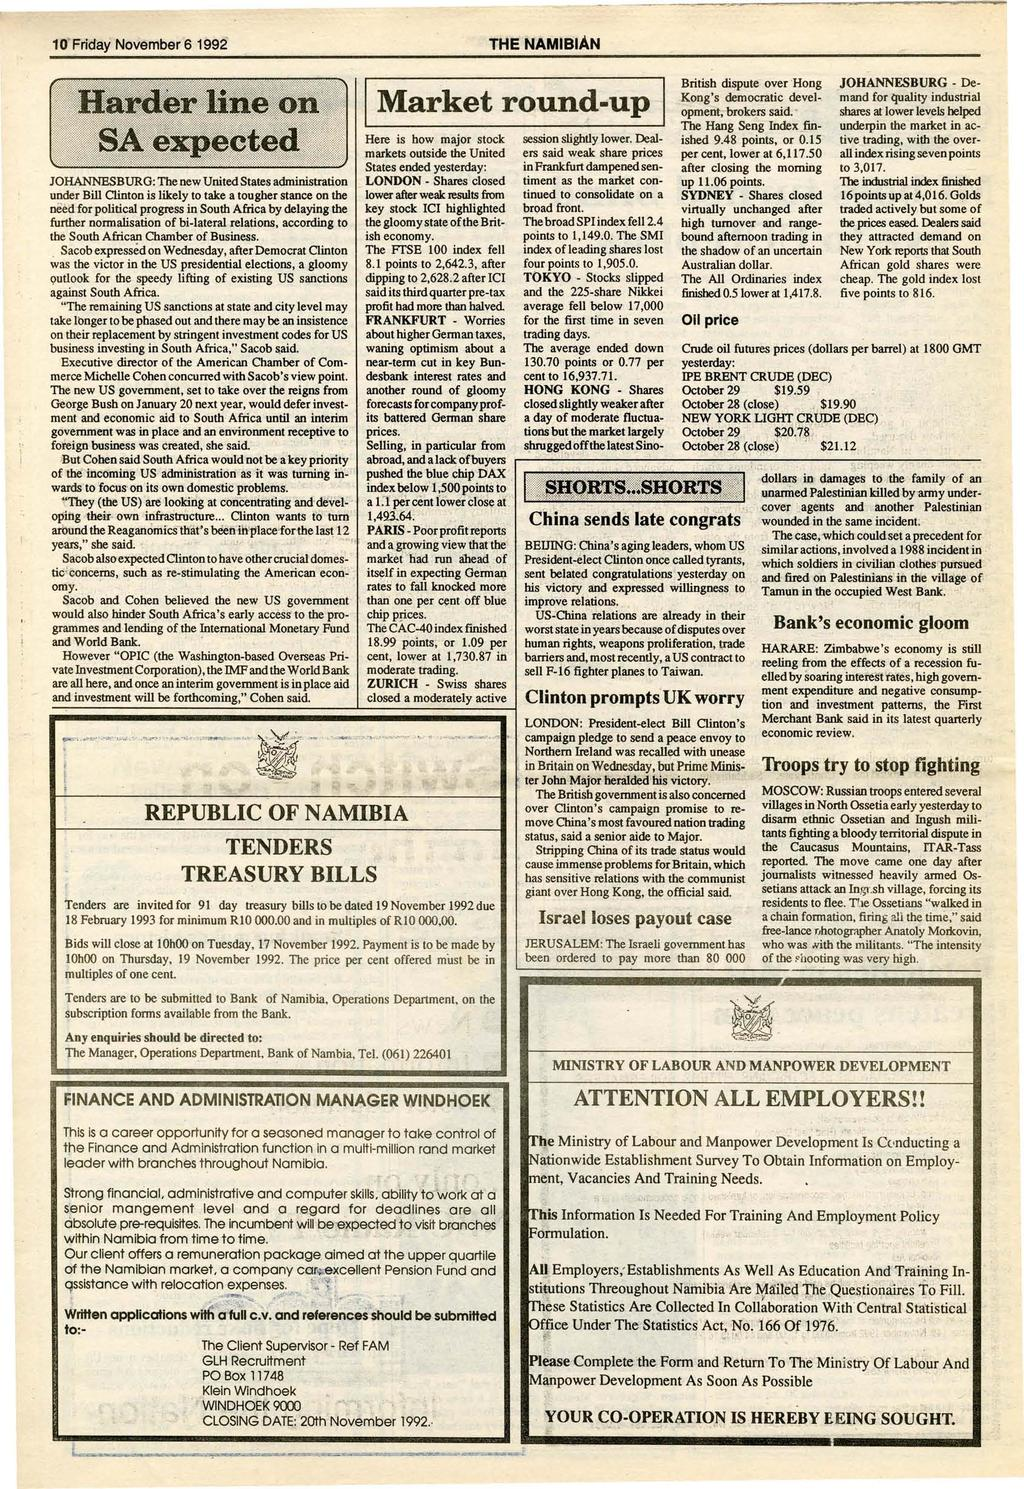 10' Frjday November 6 1992 THENAMIBIAN I Market round-up Here is how major stock markets outside the United States ended yesterday: 10HANNESBURG: The new United States administration LONDON - Shares